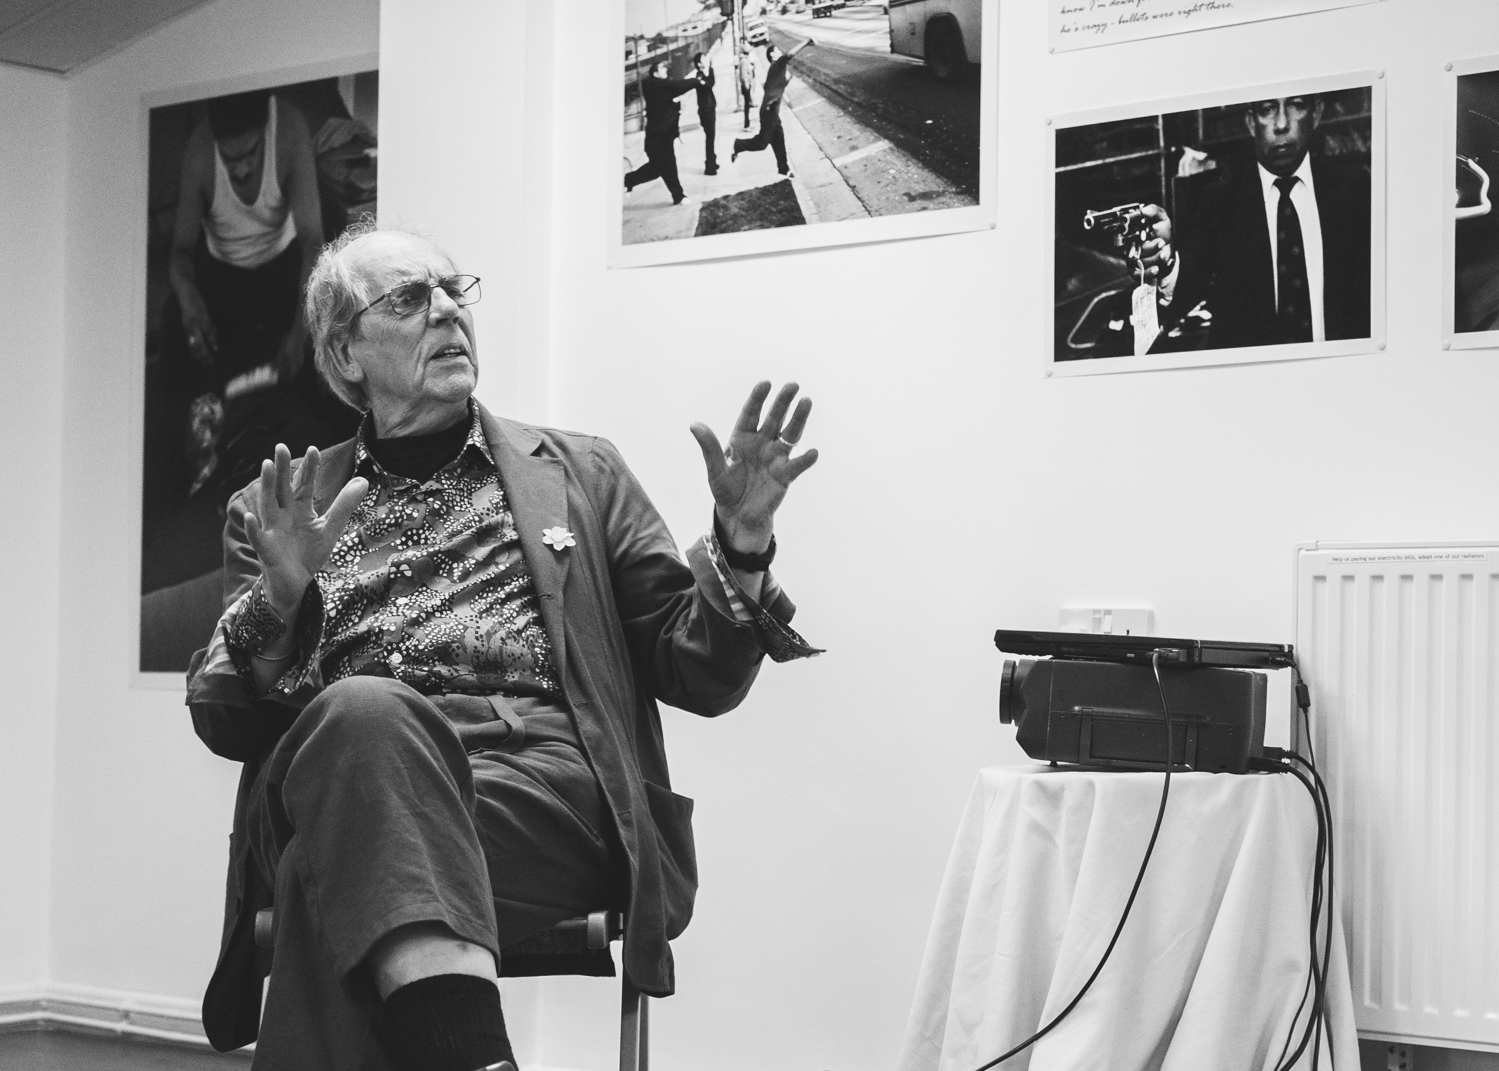 David Hurn conducts a talk during the Joseph Rodriguez exhibition, Third Floor Gallery, Cardiff.